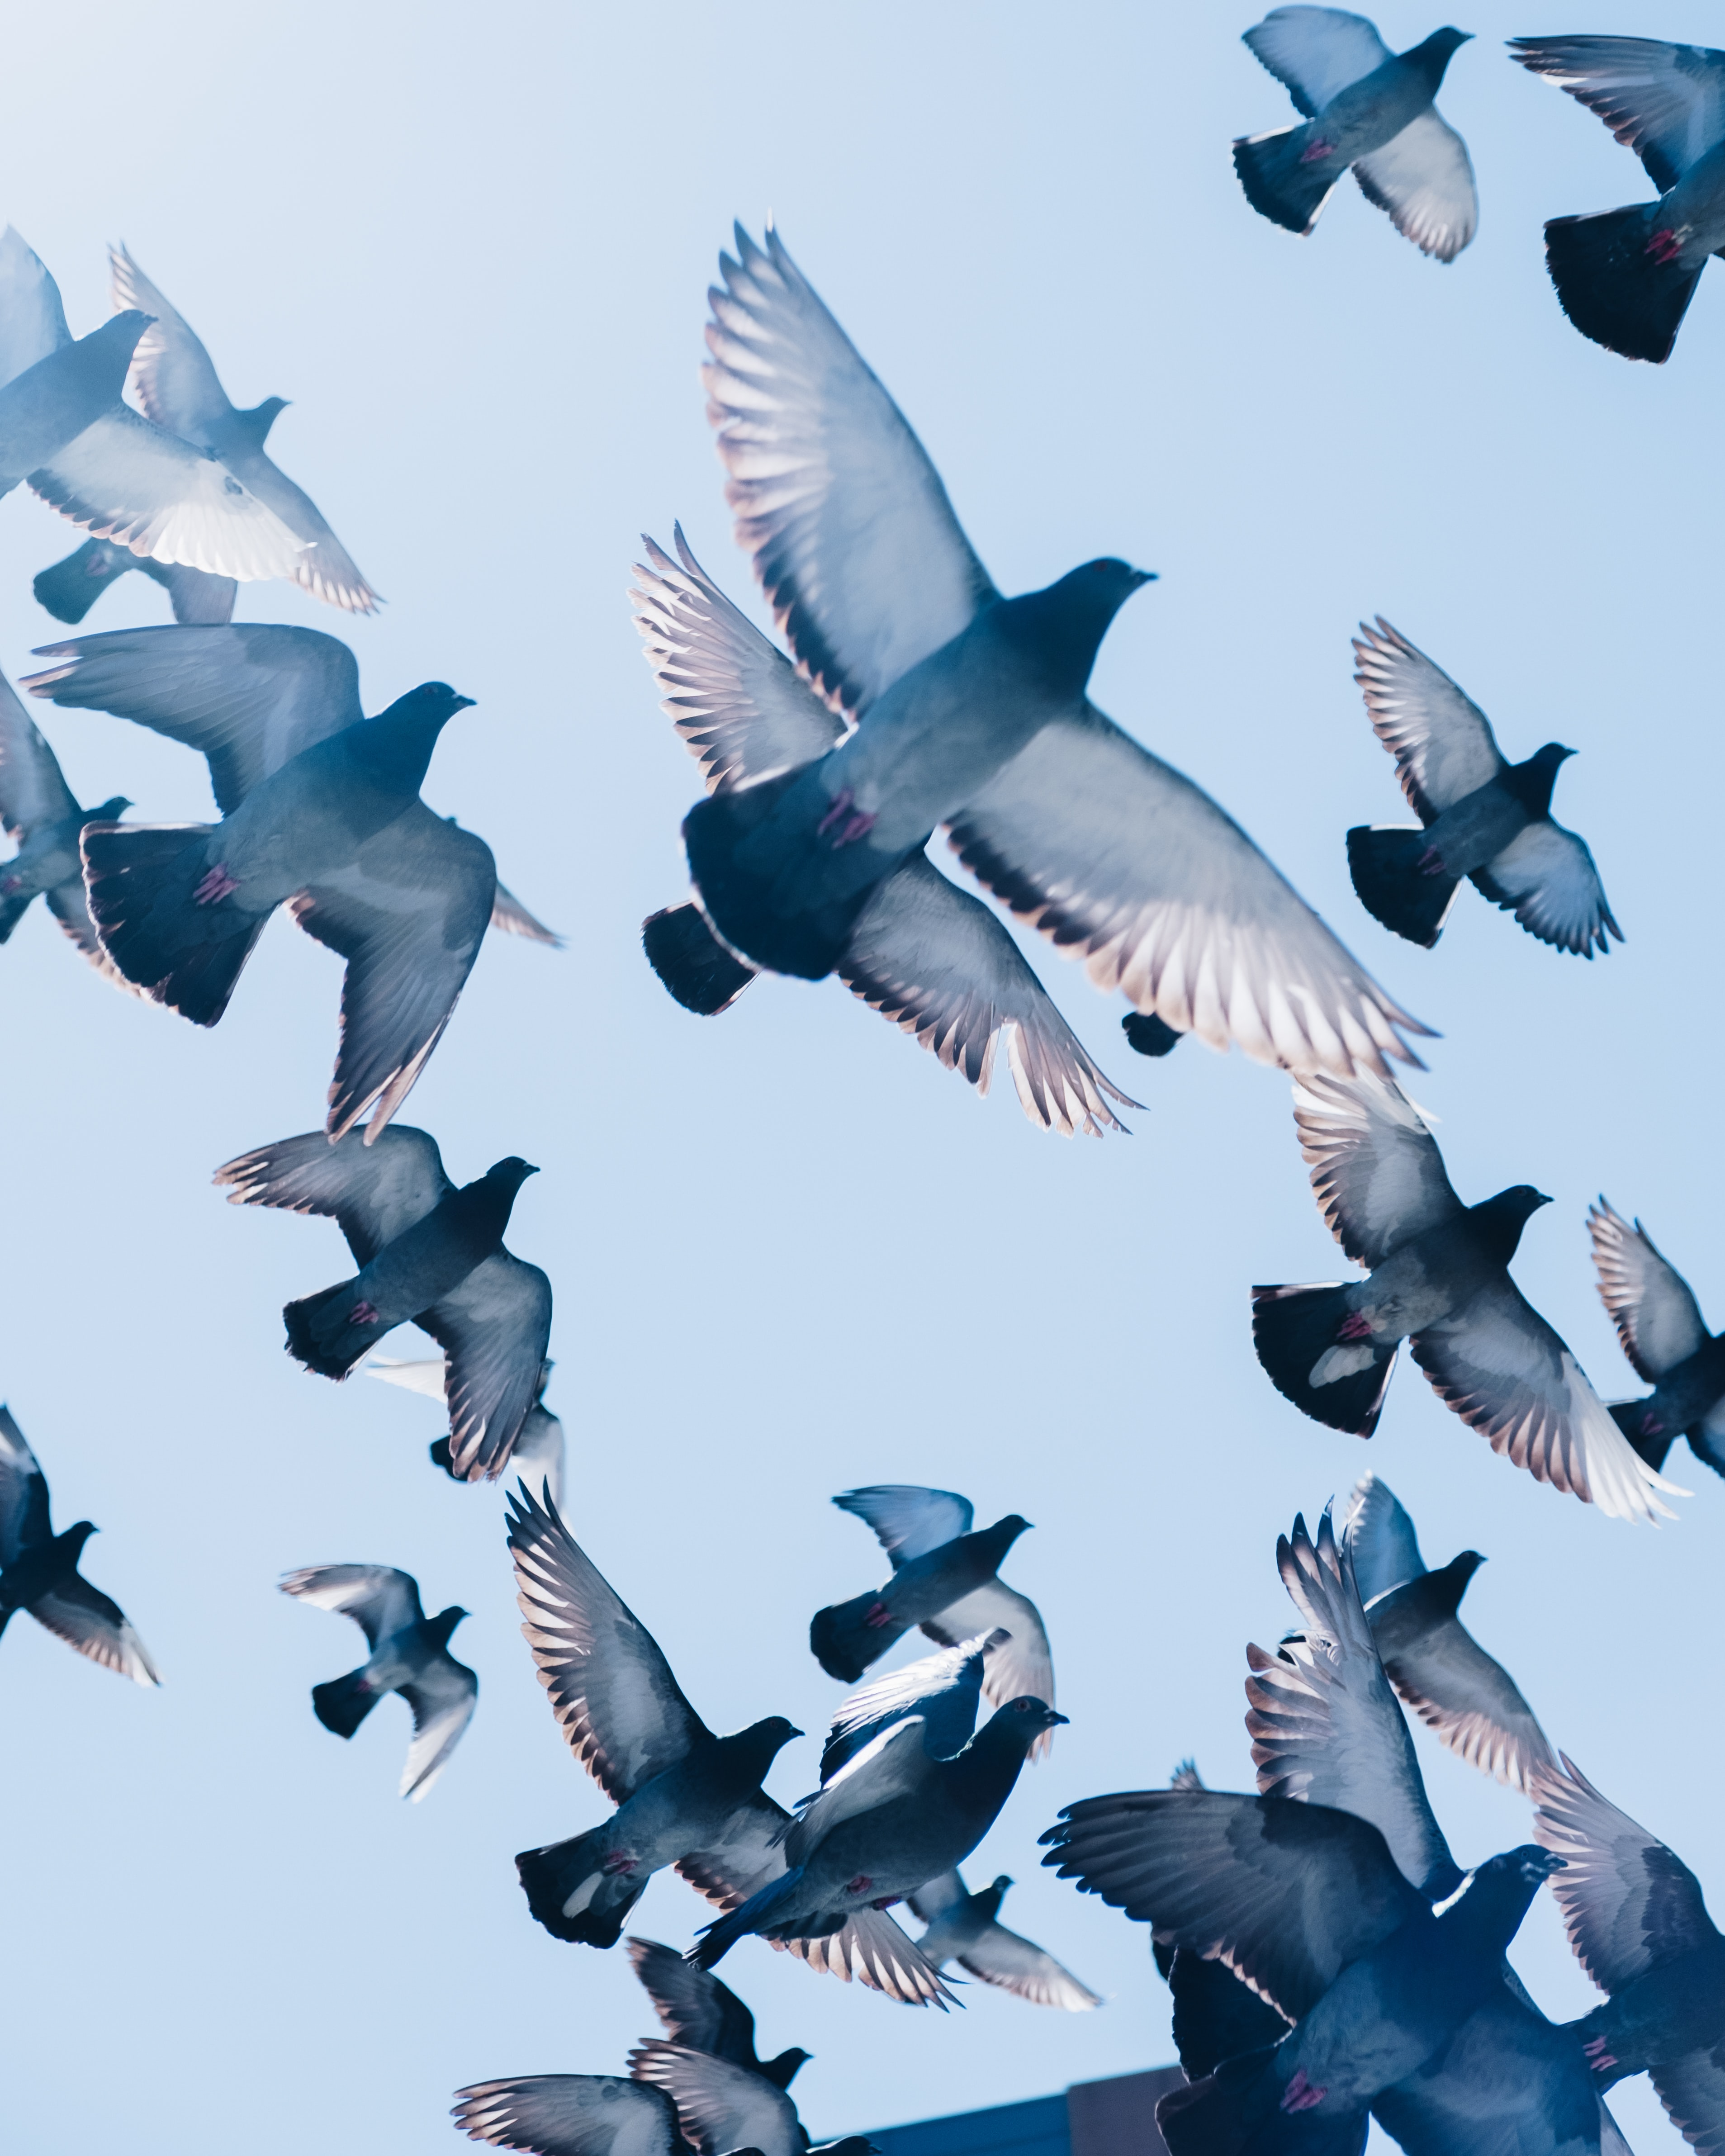 gray pigeons flying under blue sky